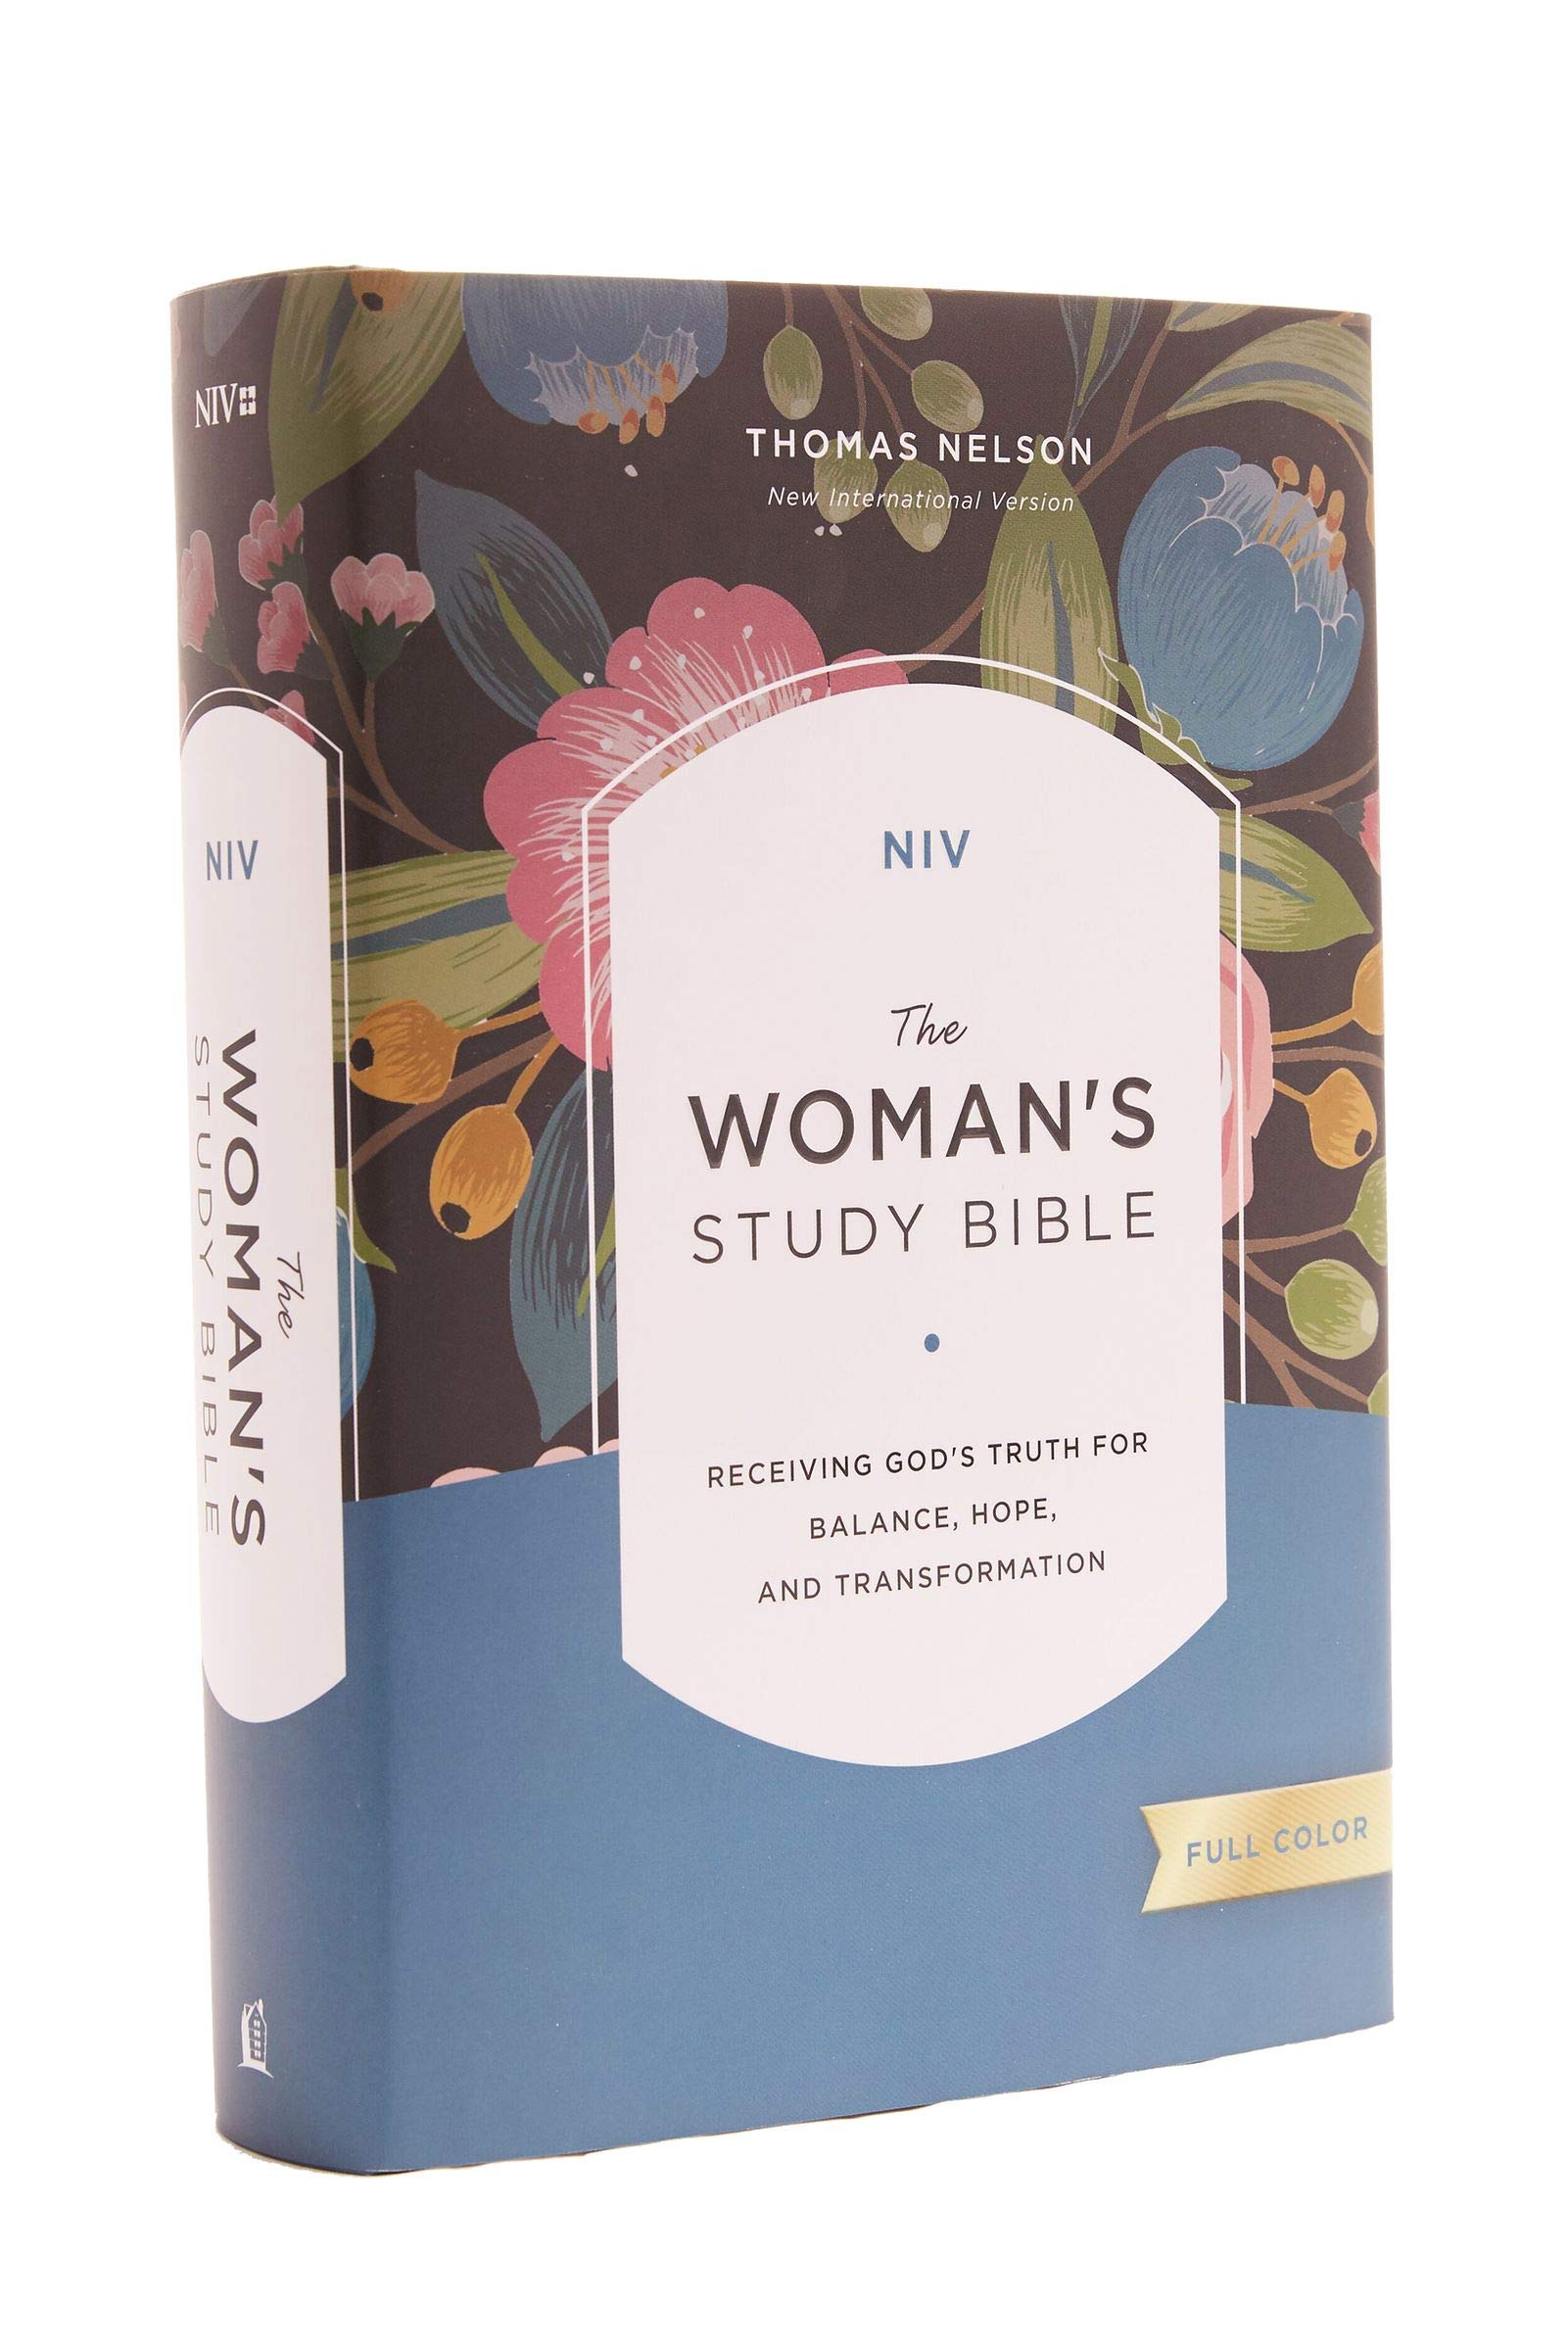 Image OfNIV, The Woman's Study Bible, Hardcover, Full-Color, Red Letter: Receiving God's Truth For Balance, Hope, And Transformation